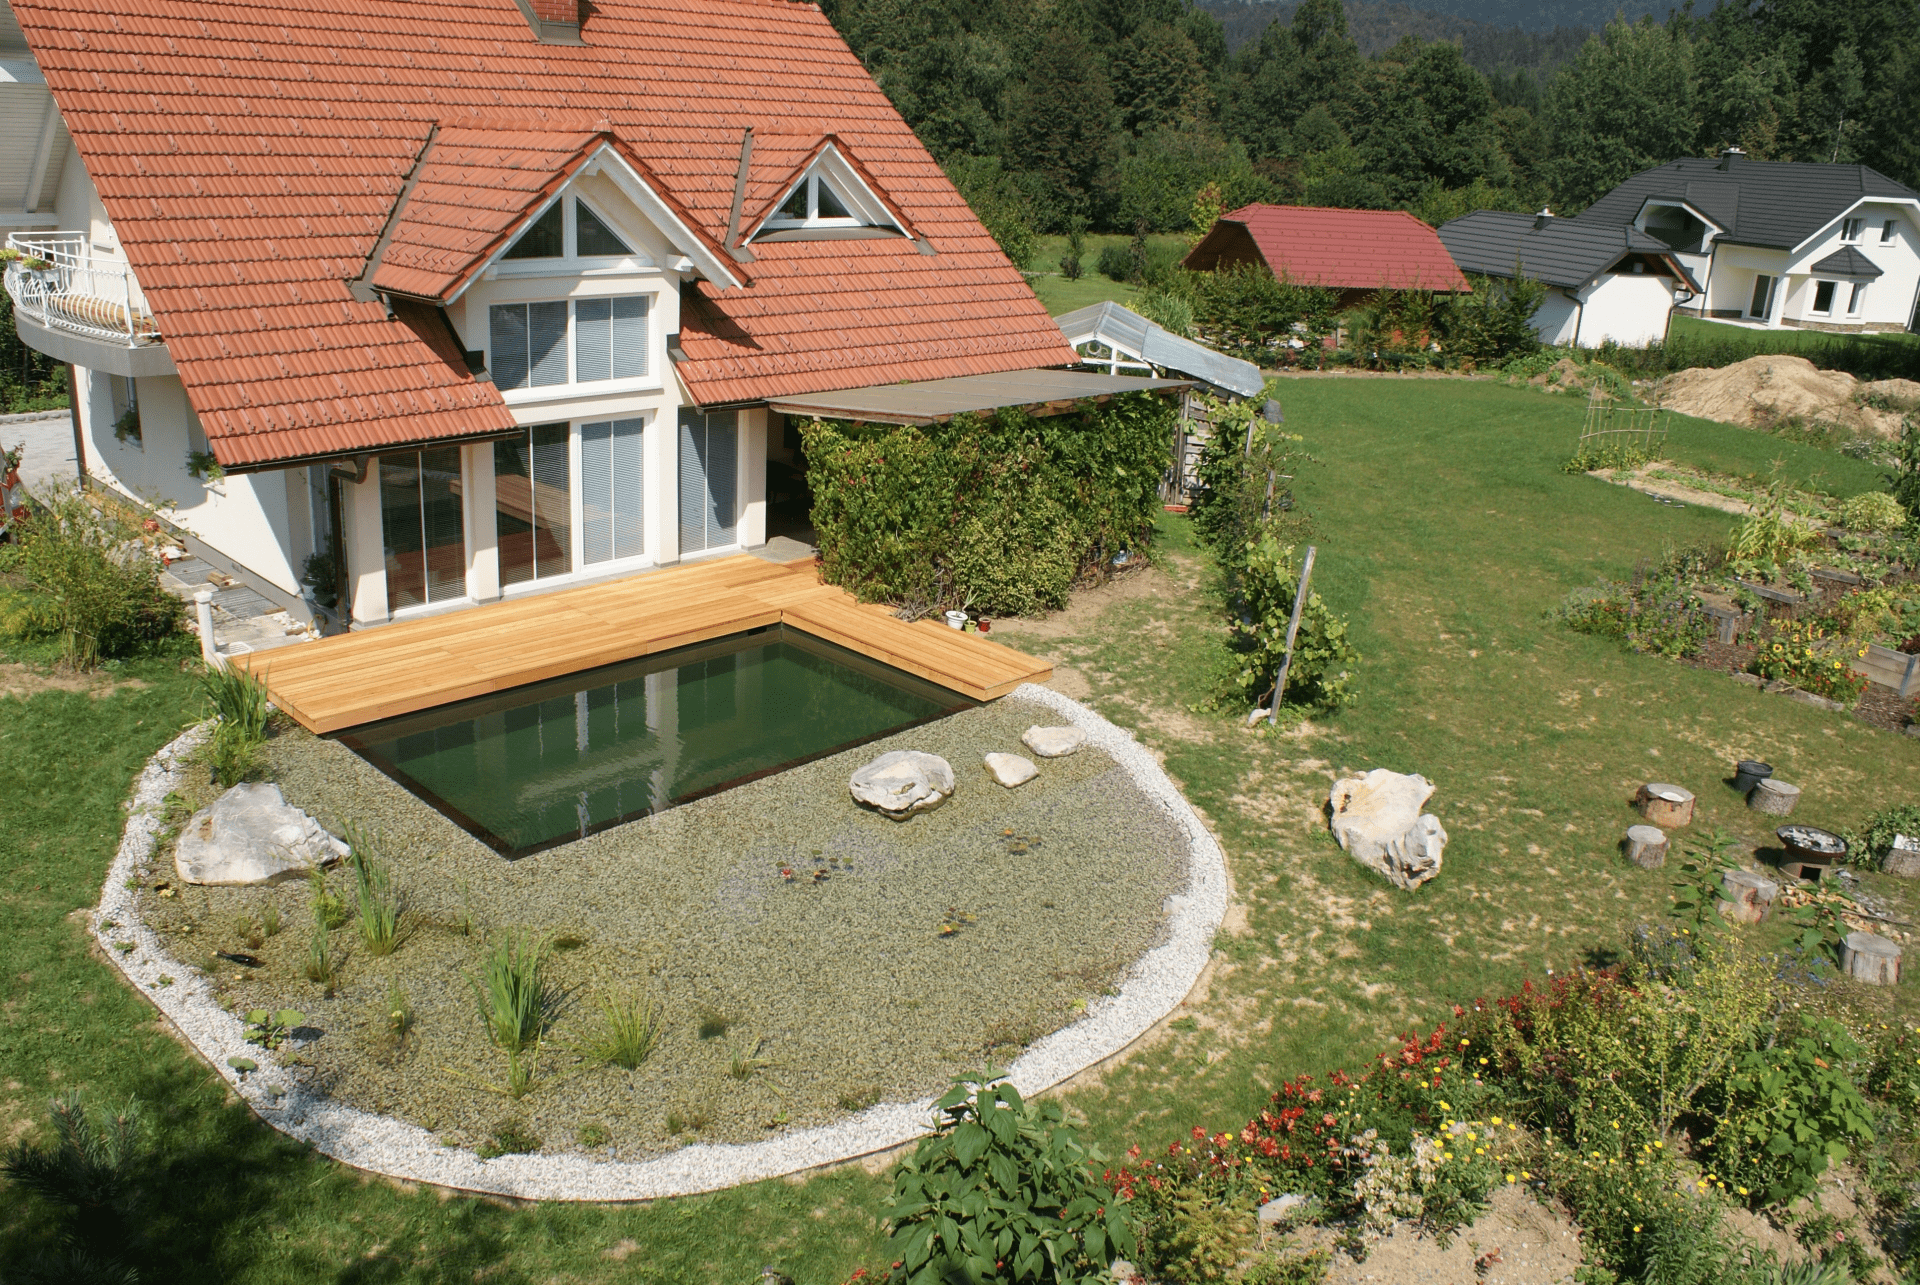 Wooden Terraces of Excellent Quality članki 1620964470